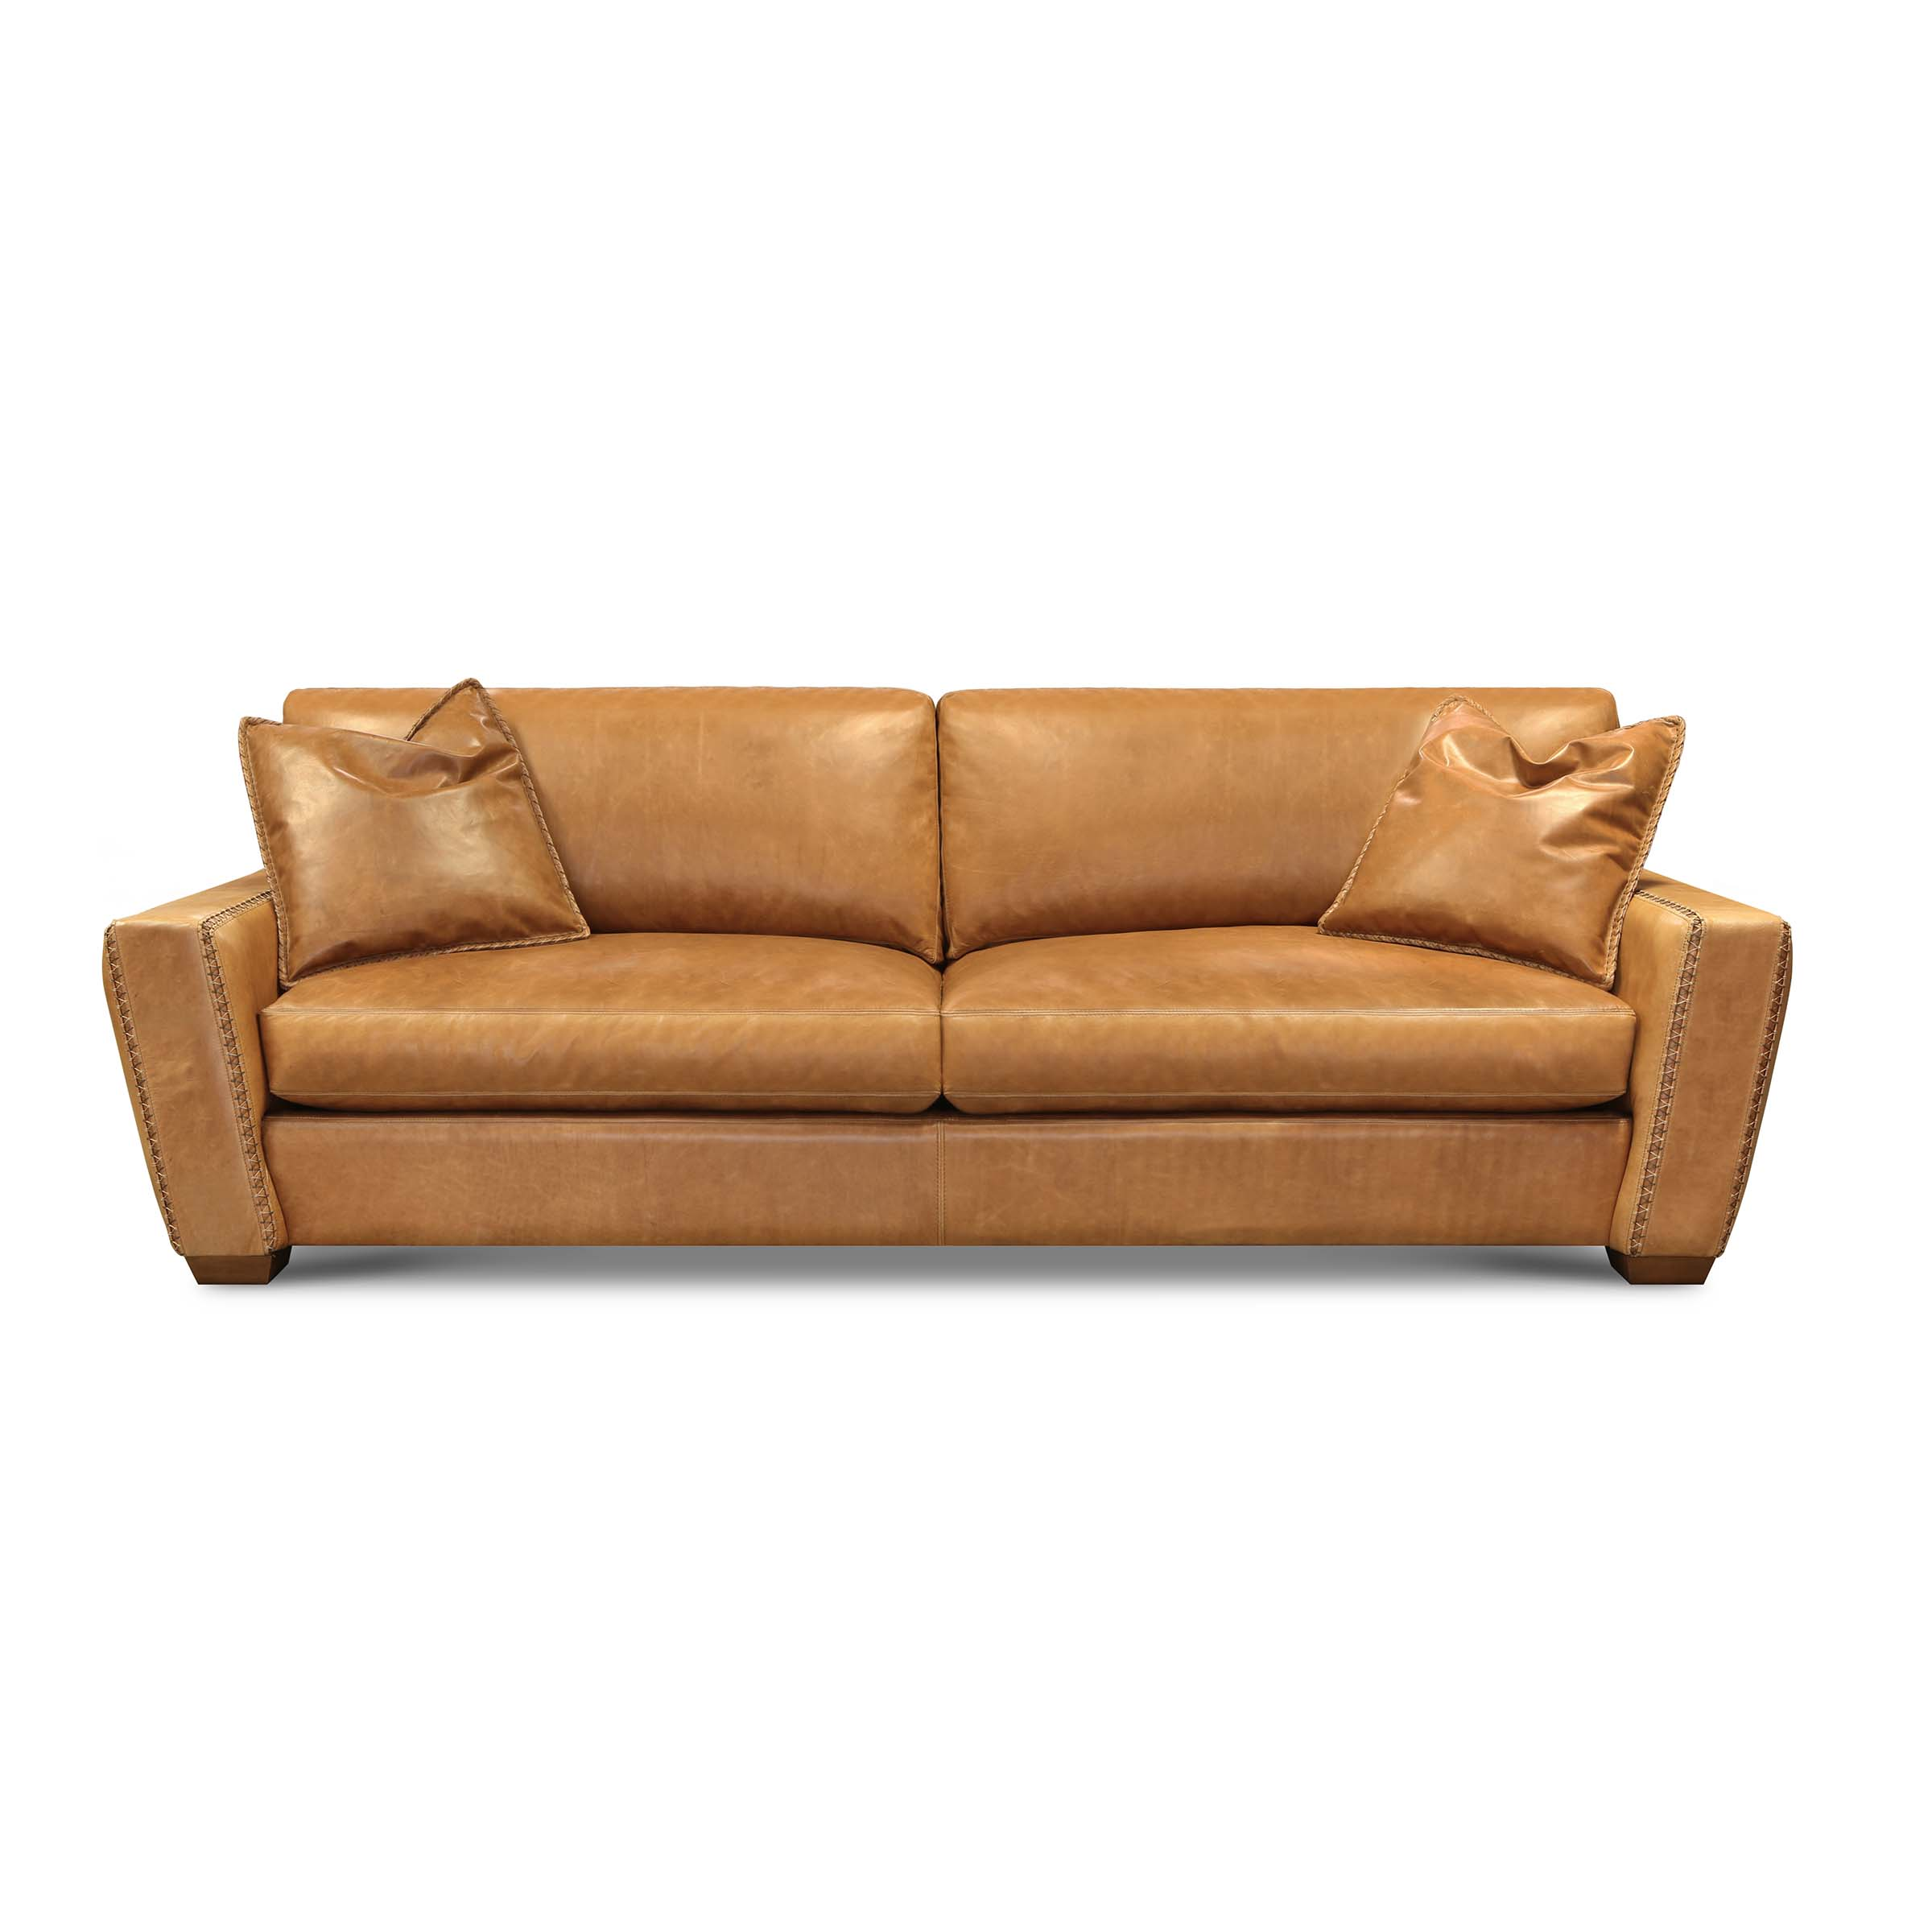 CITY-COWBO-30-Sofa-Coachella-Tan